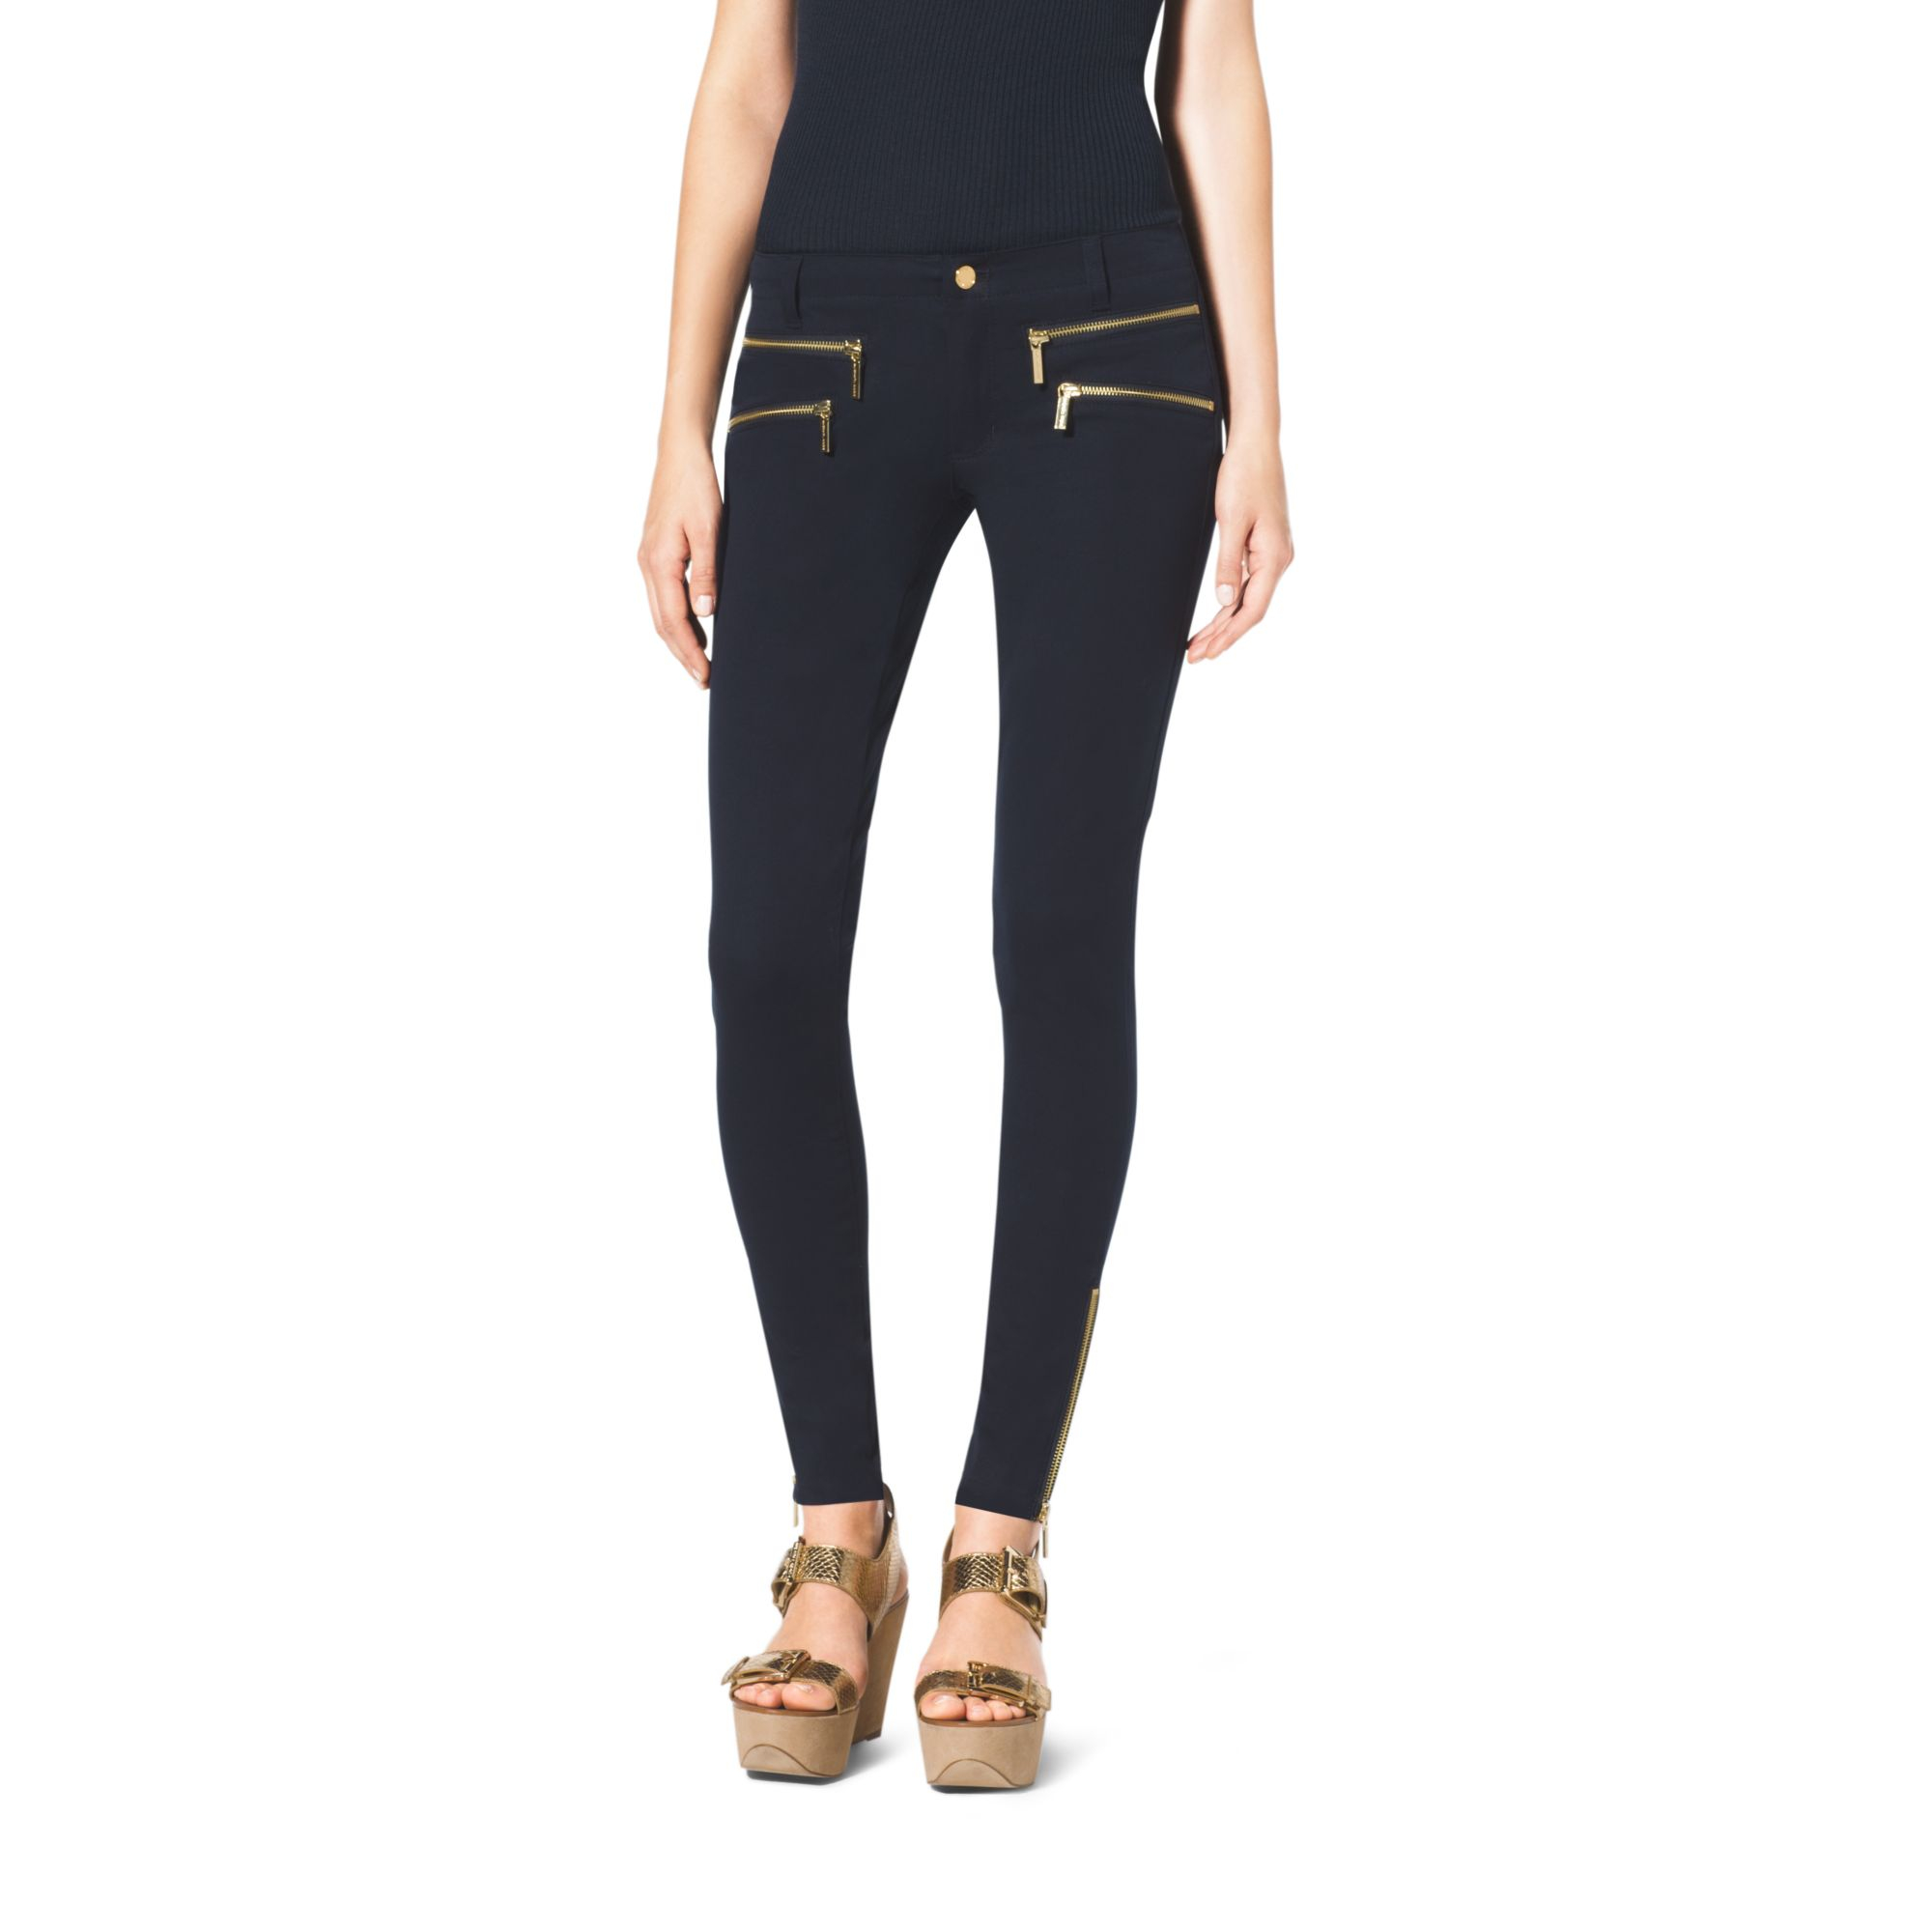 Skinny jeans with zip pockets